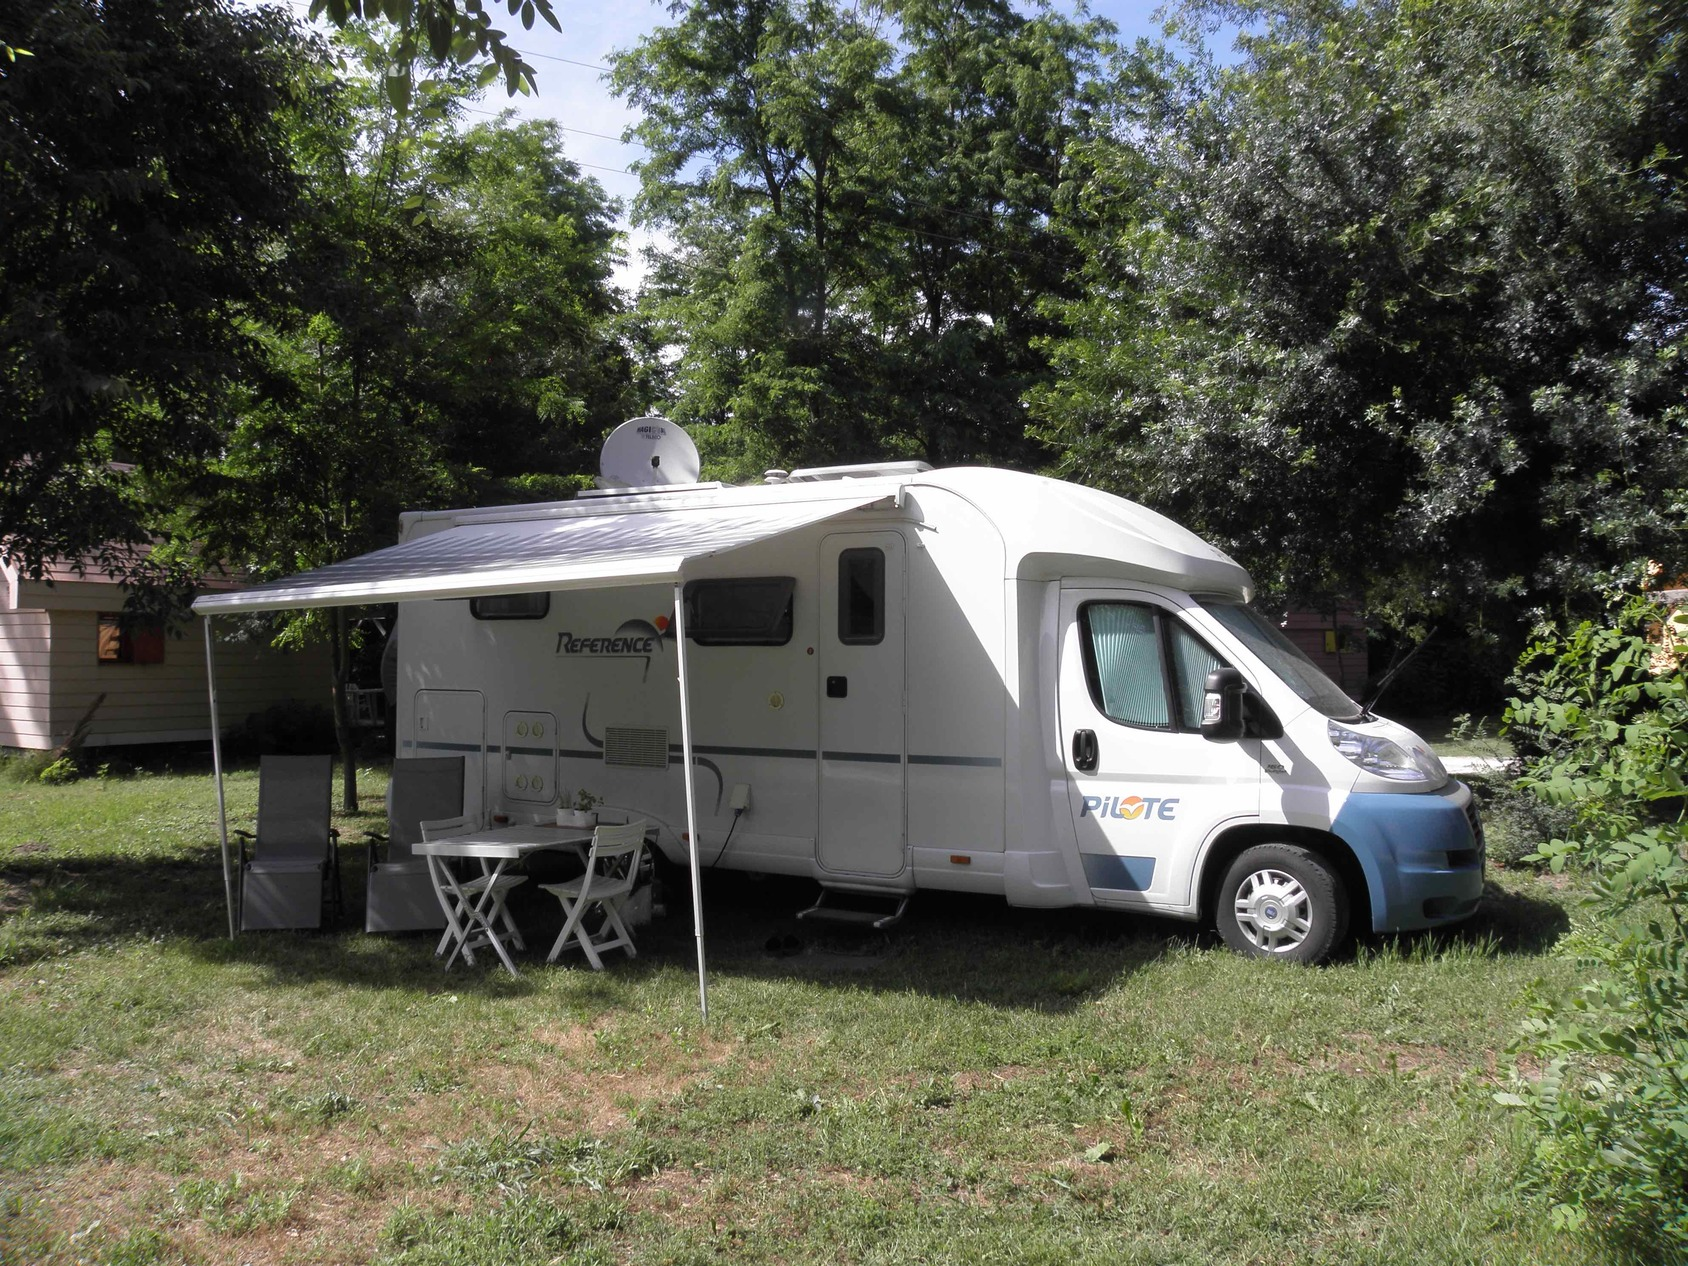 Camping belle rive languedoc roussillon frankrijk for Bell rive